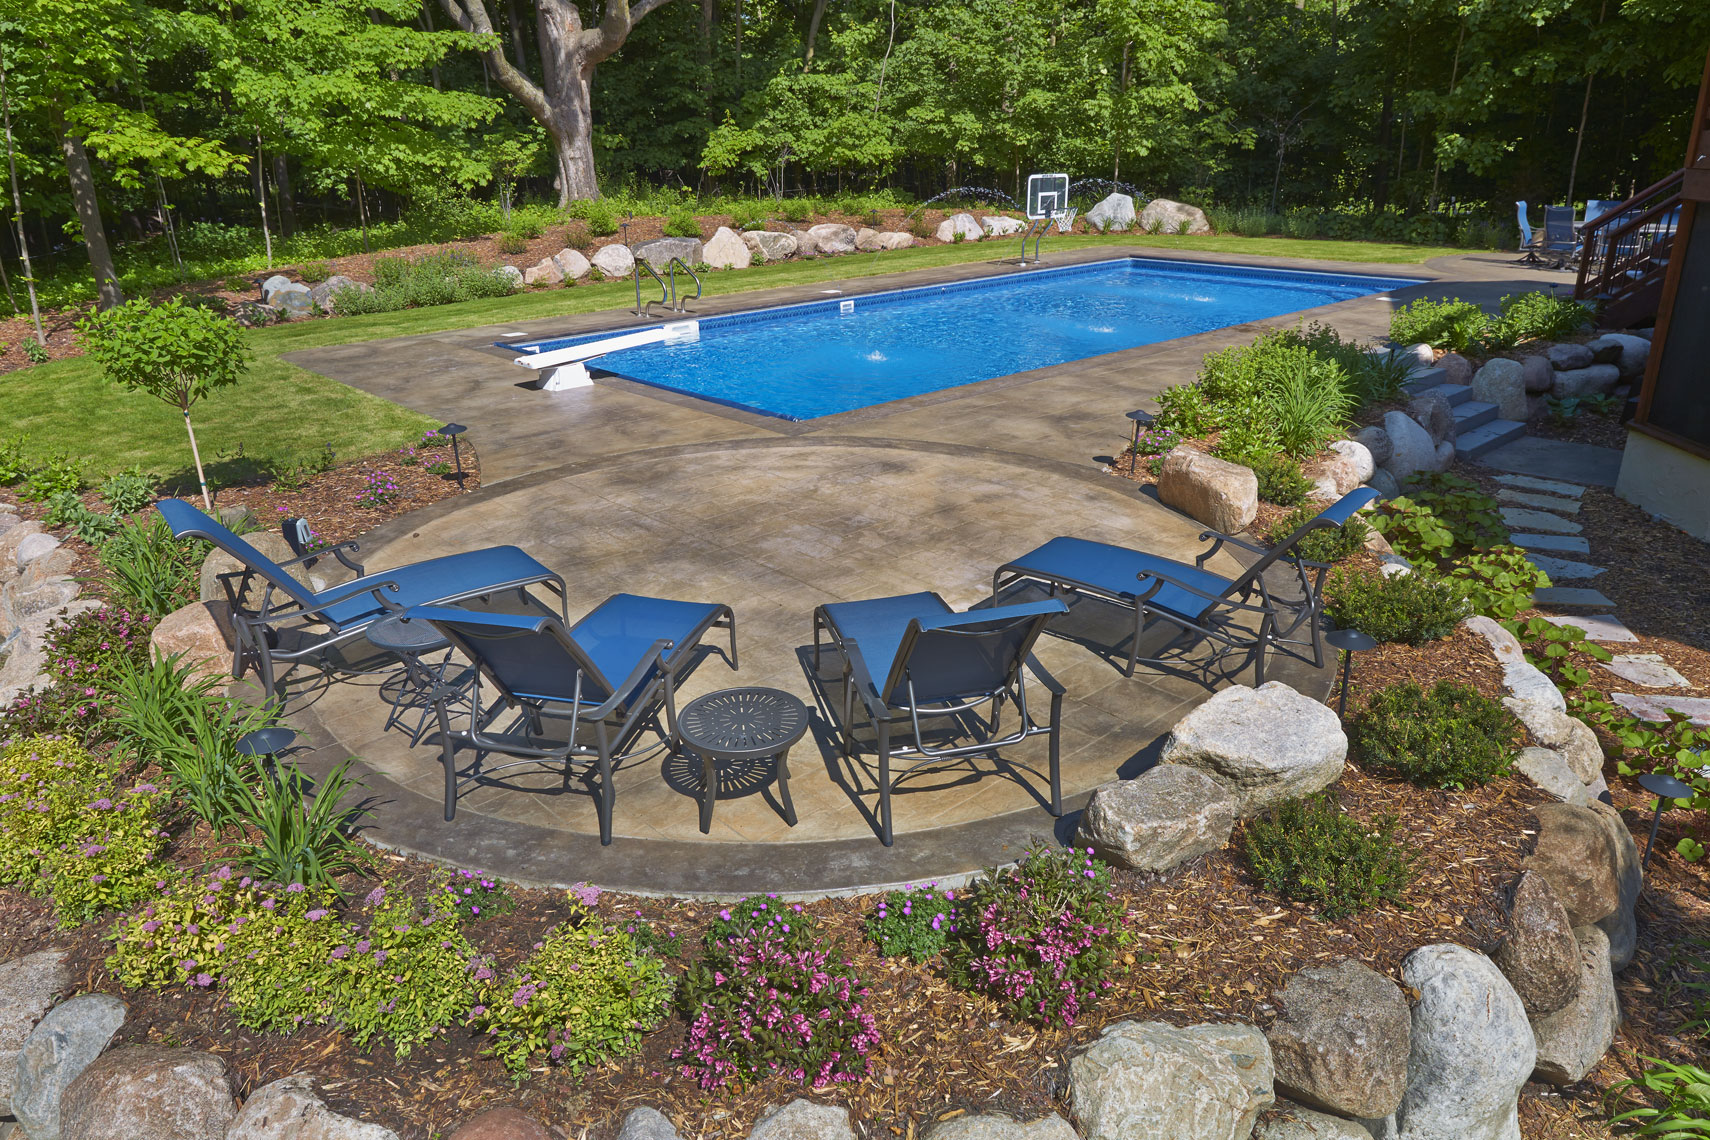 Pool in backyard/summertime/lg tile surround/location photography